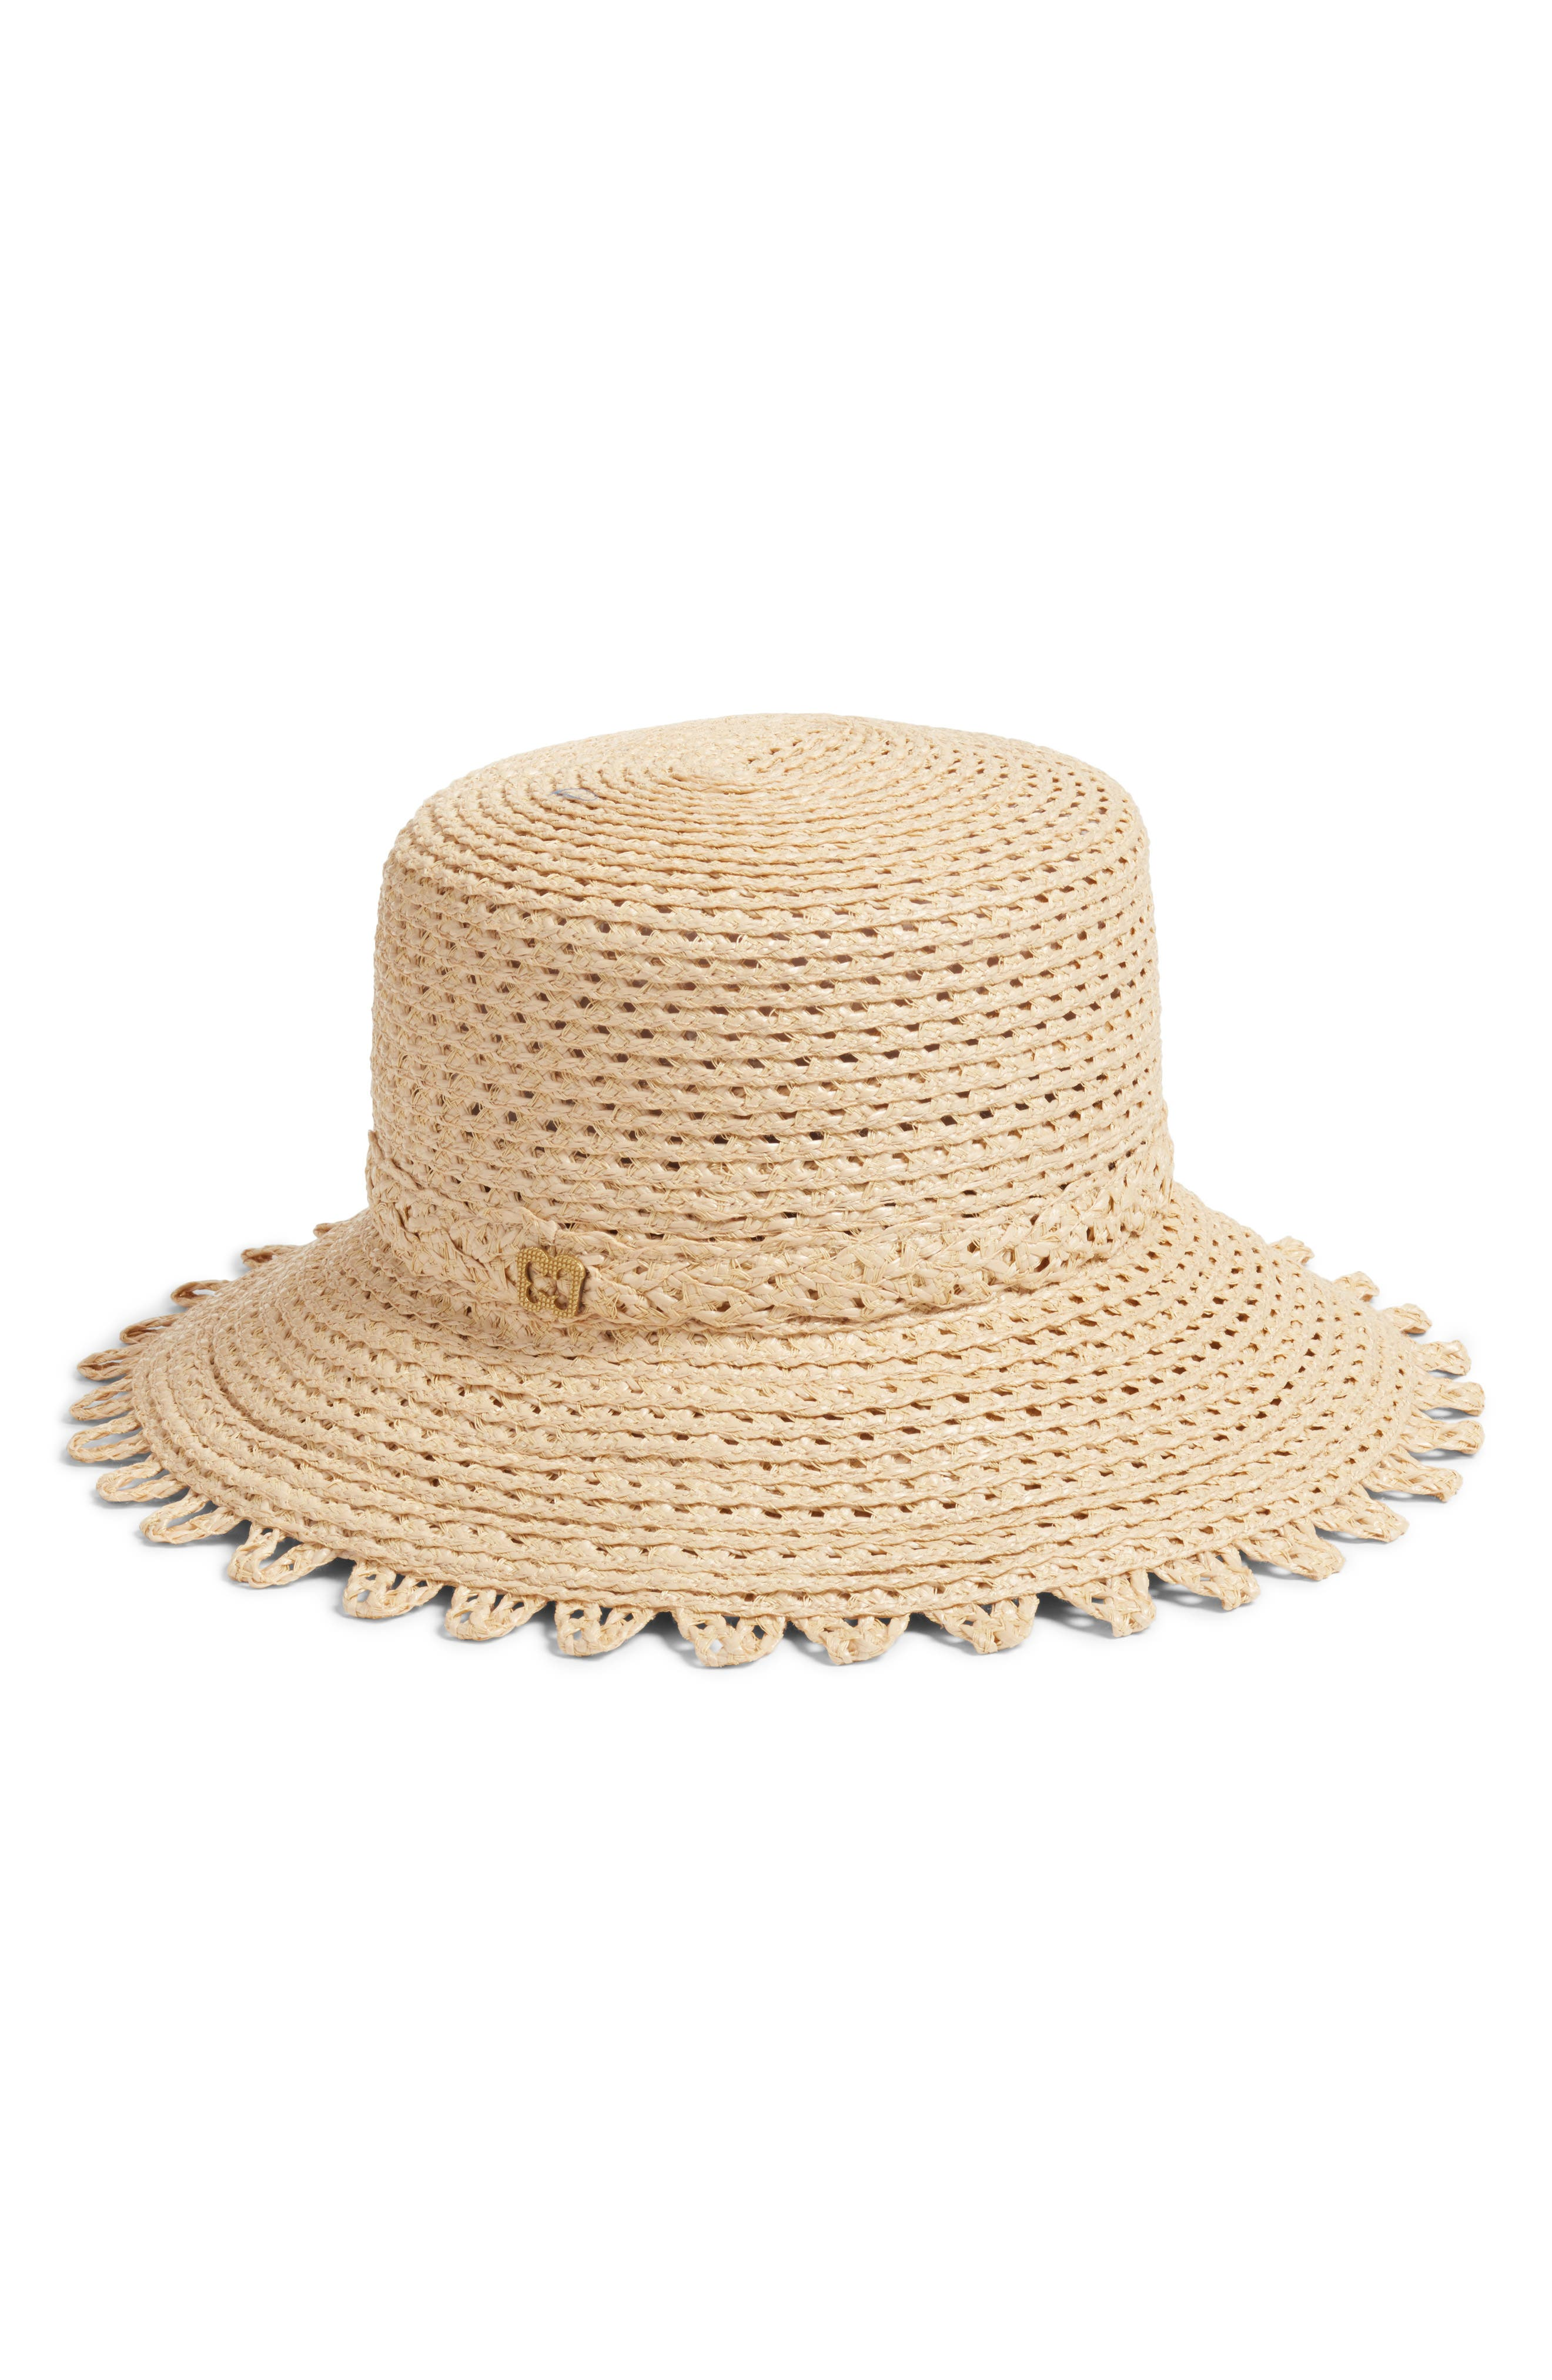 Ibiza Squishee<sup>®</sup> Bucket Hat,                             Alternate thumbnail 2, color,                             200